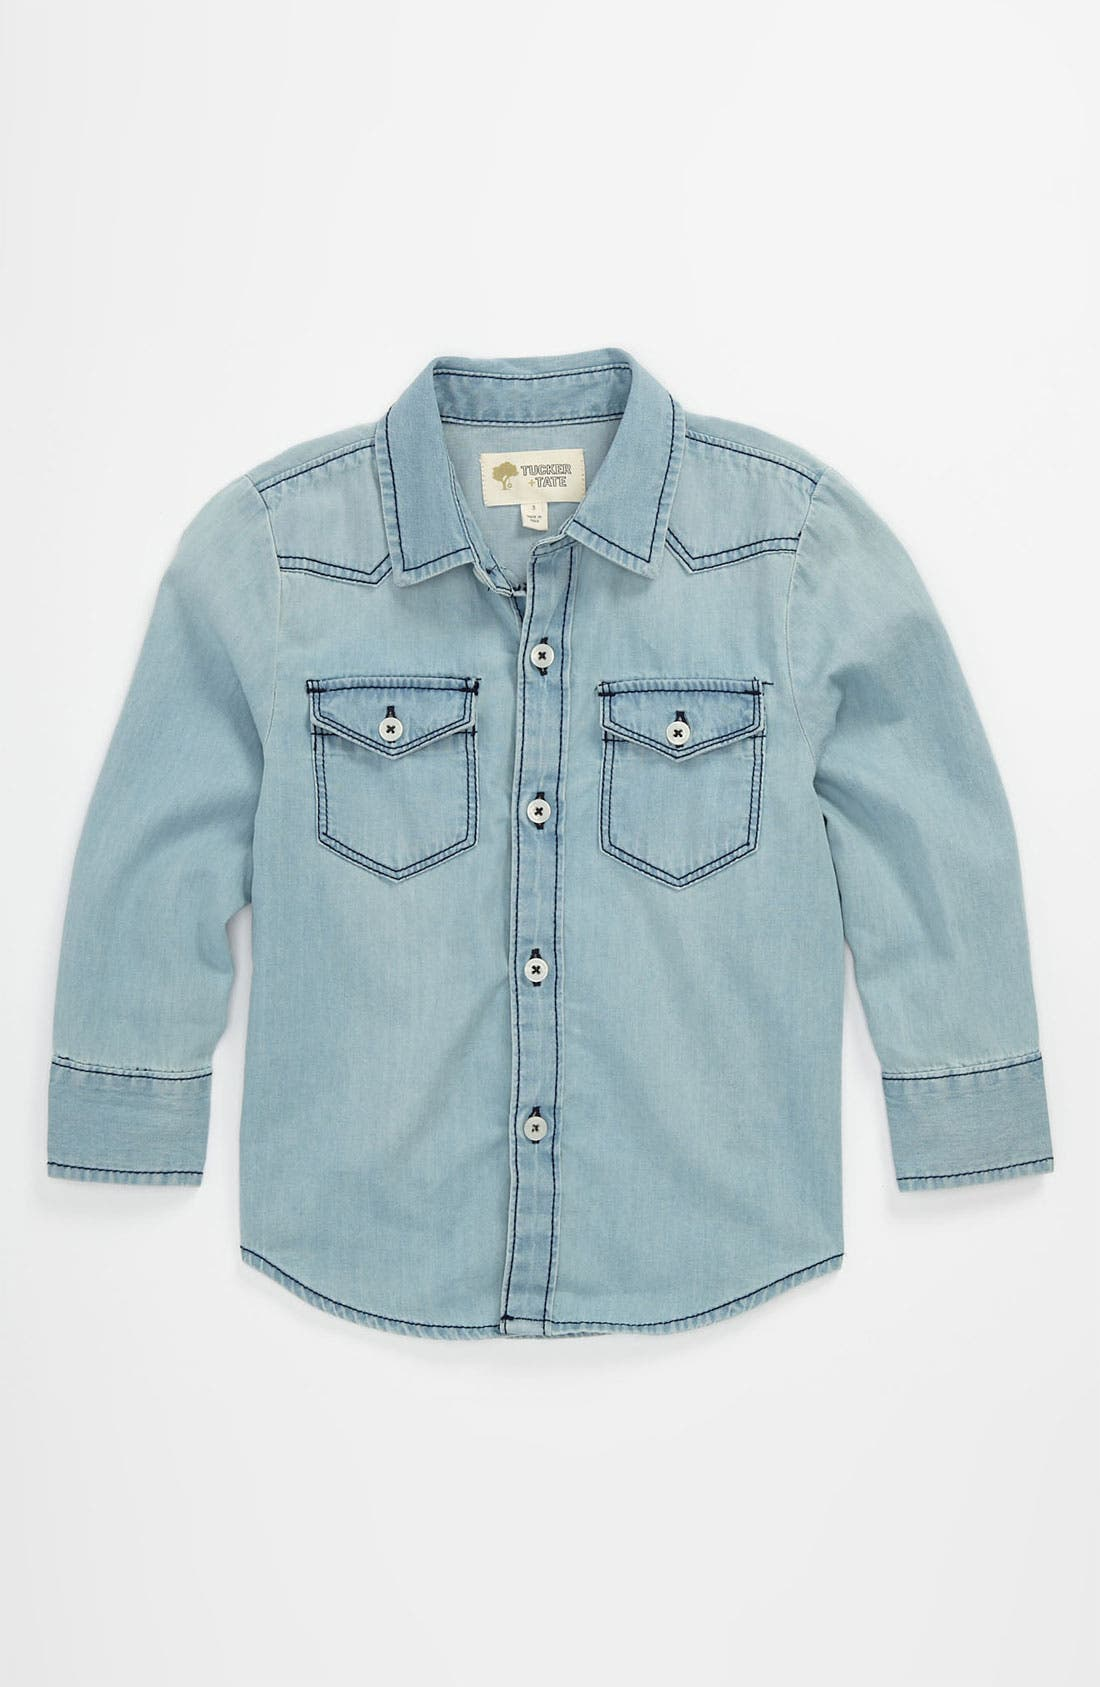 Main Image - Tucker + Tate 'Benson' Denim Shirt (Toddler)